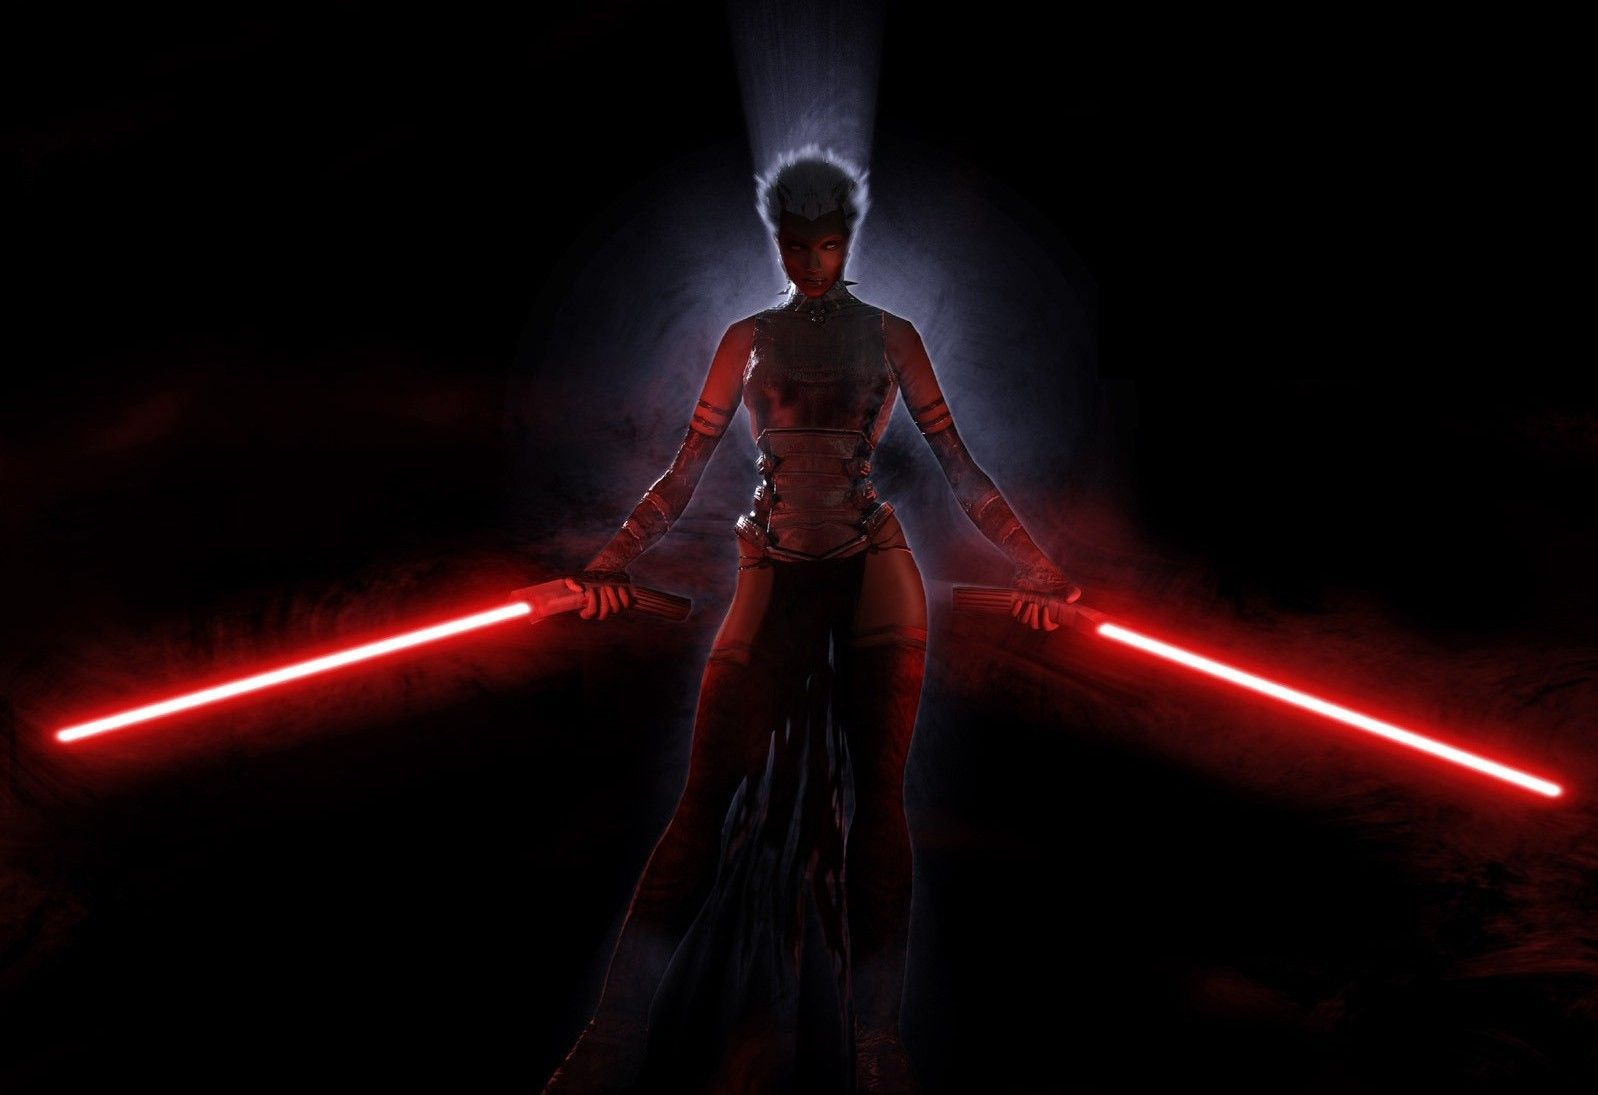 Dark Jedi Wallpapers Top Free Dark Jedi Backgrounds Wallpaperaccess